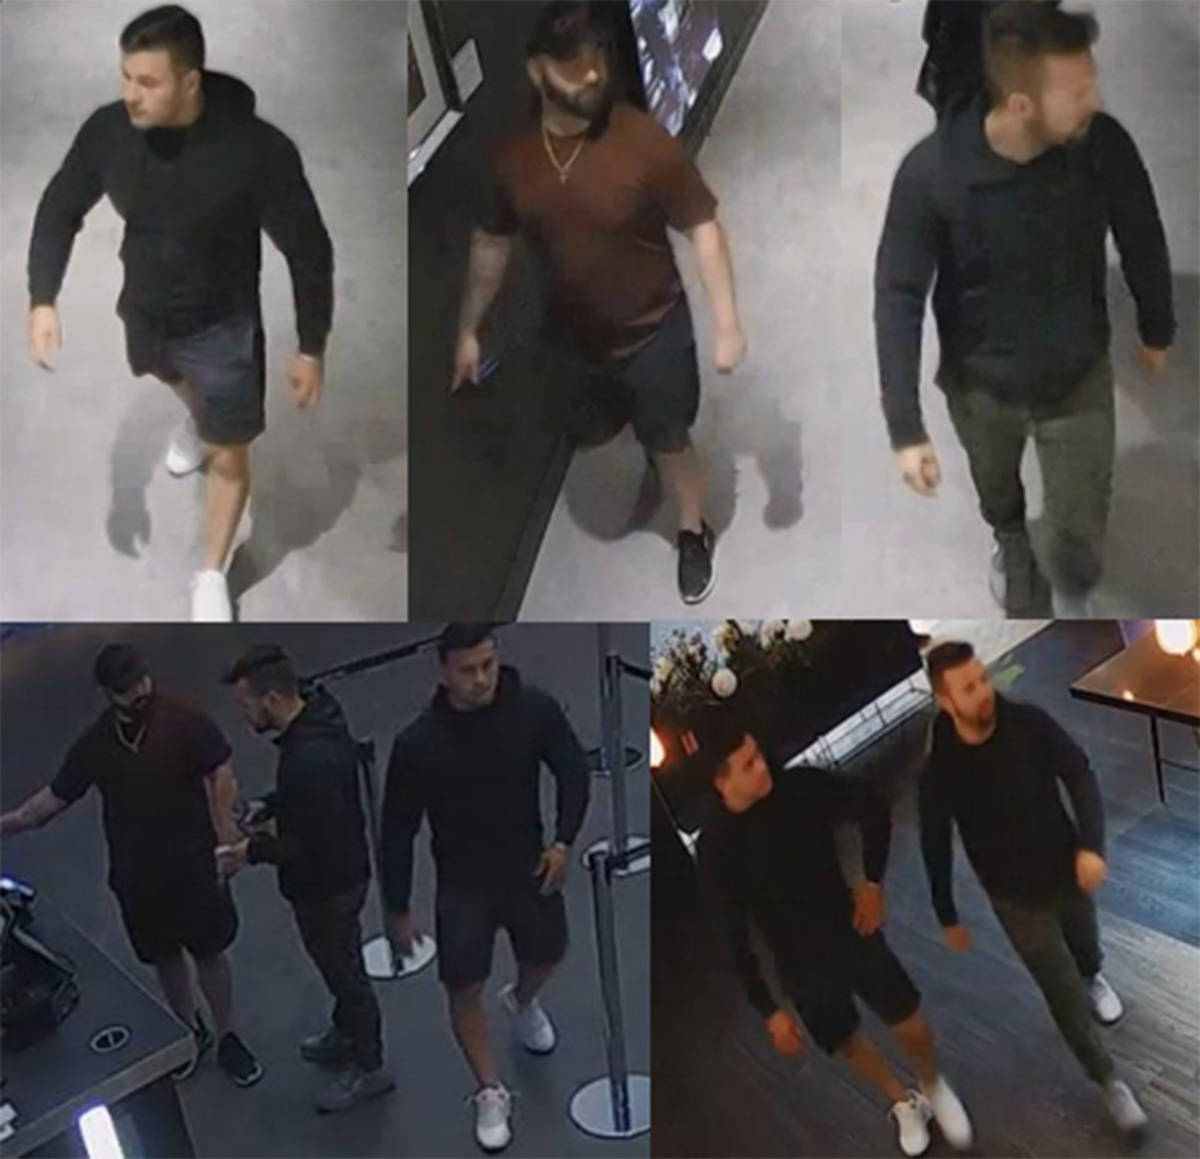 West Vancouver police are asking the public to help identify these three men in connection with a Cineplex theatre being damaged at Park Royal Shopping Centre on Aug. 16. (West Vancouver Police Department)